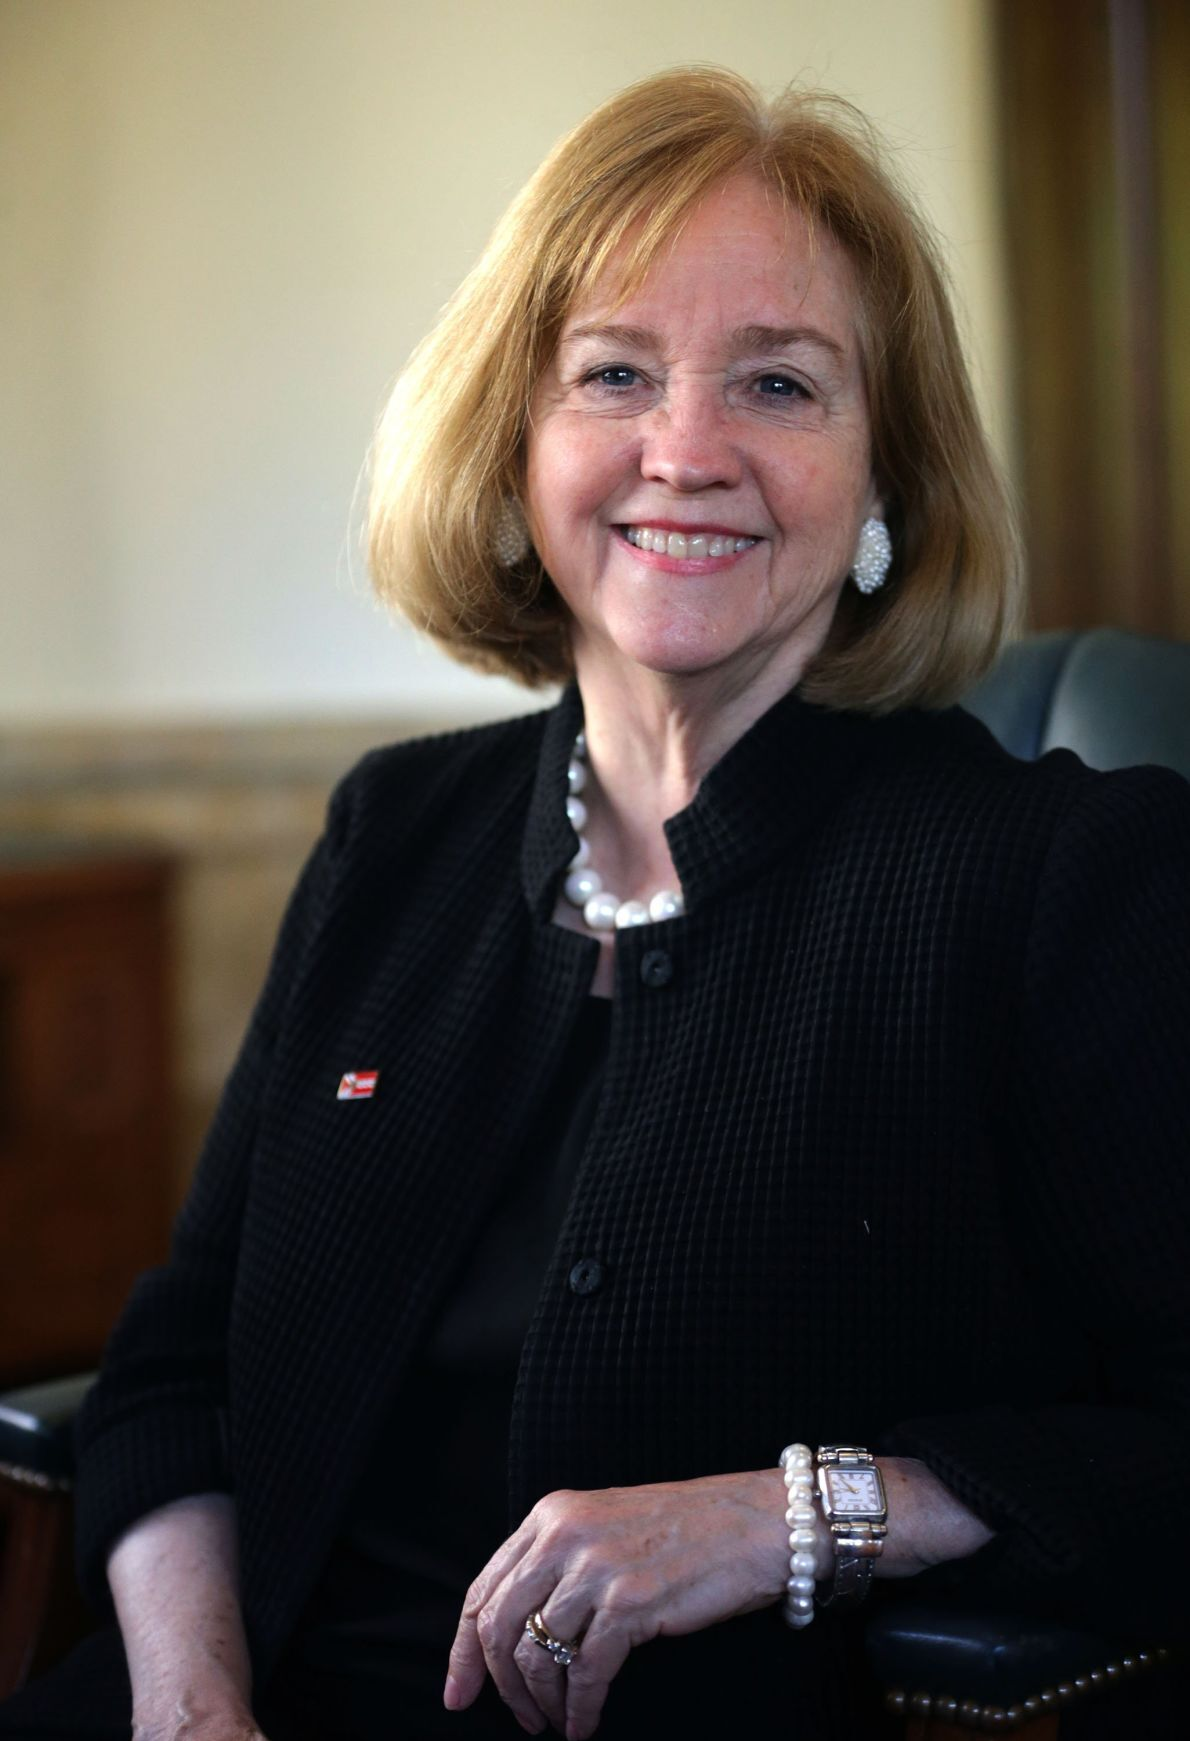 Lyda Krewson, first female Mayor of St. Louis, reflects on her four years in office